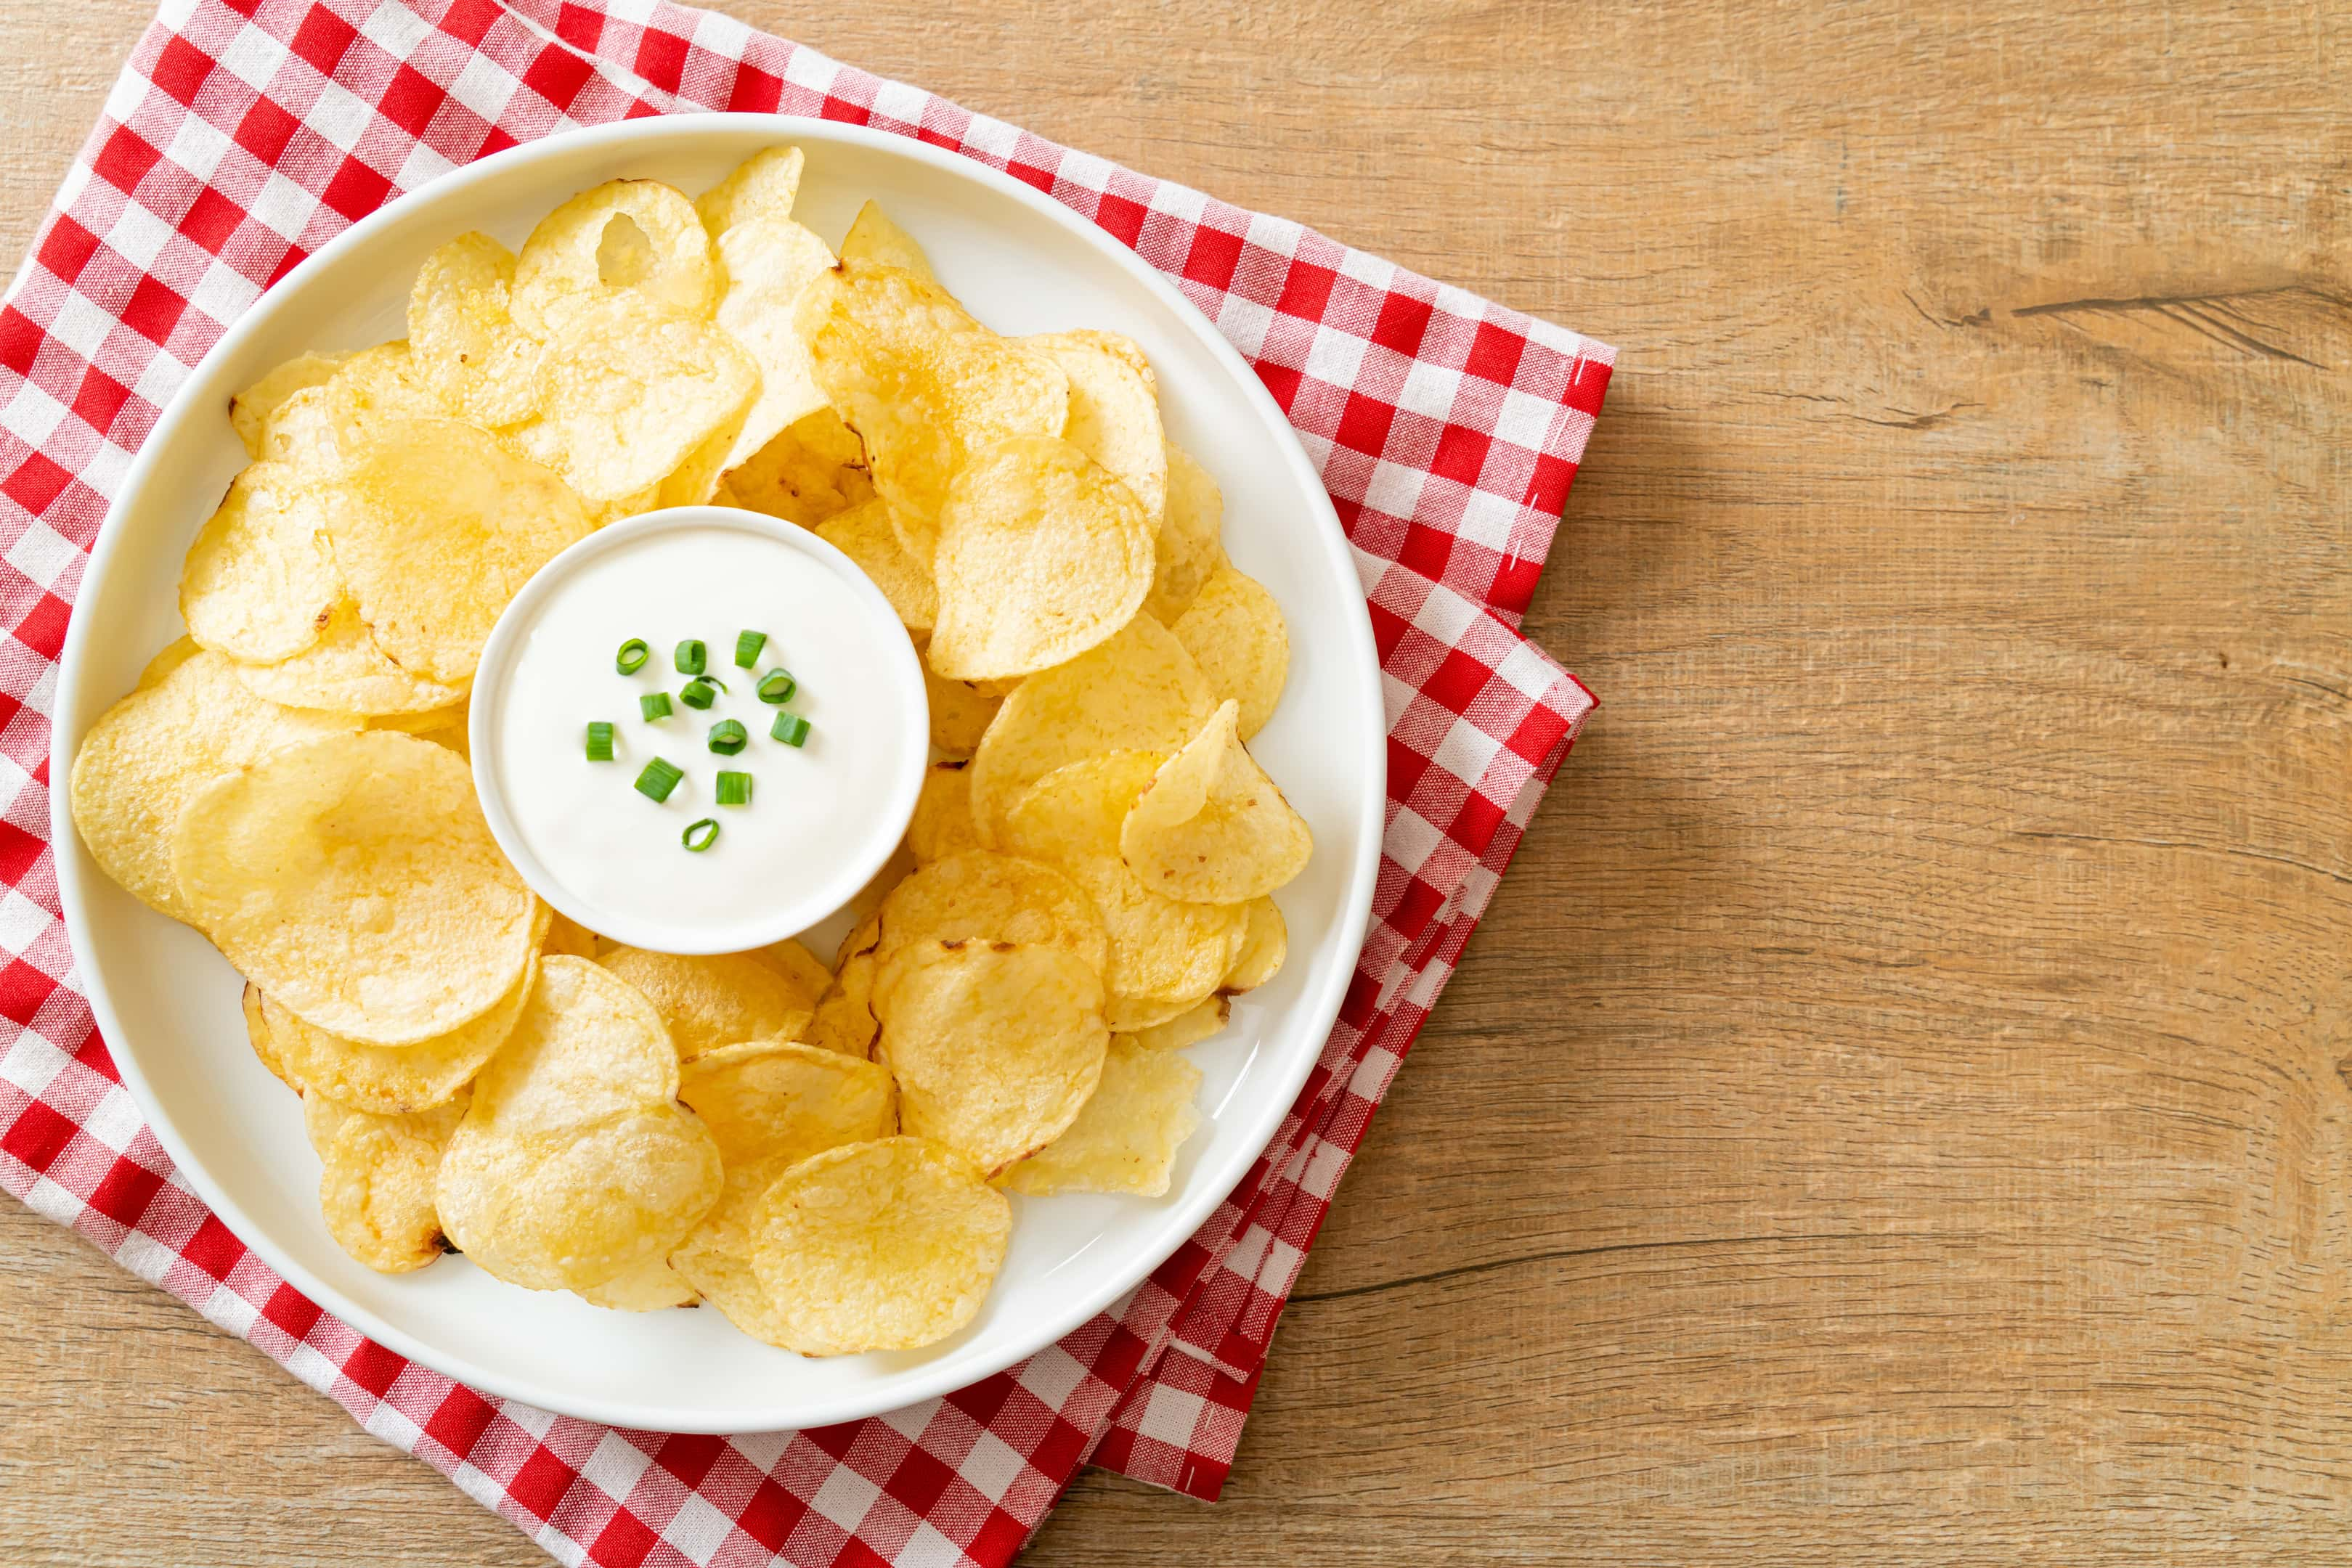 Potato chips with sour cream dipping sauce on a plate